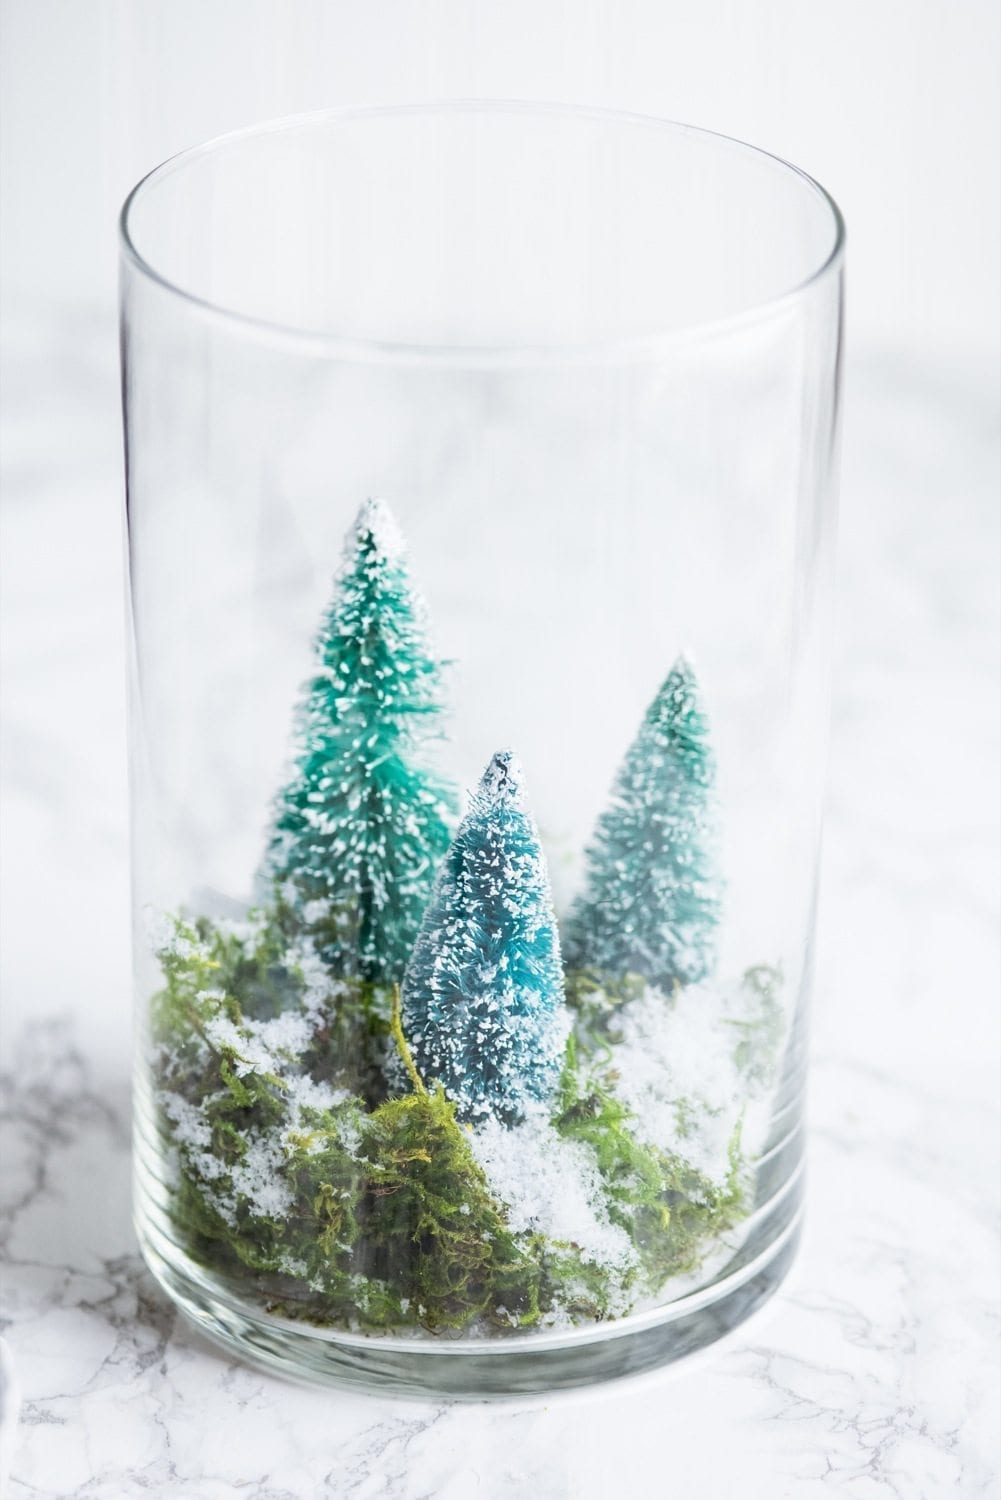 DIY Terrarium Winter Scene | Christmas DIY ideas, homemade Christmas decorations and more from @cydconverse